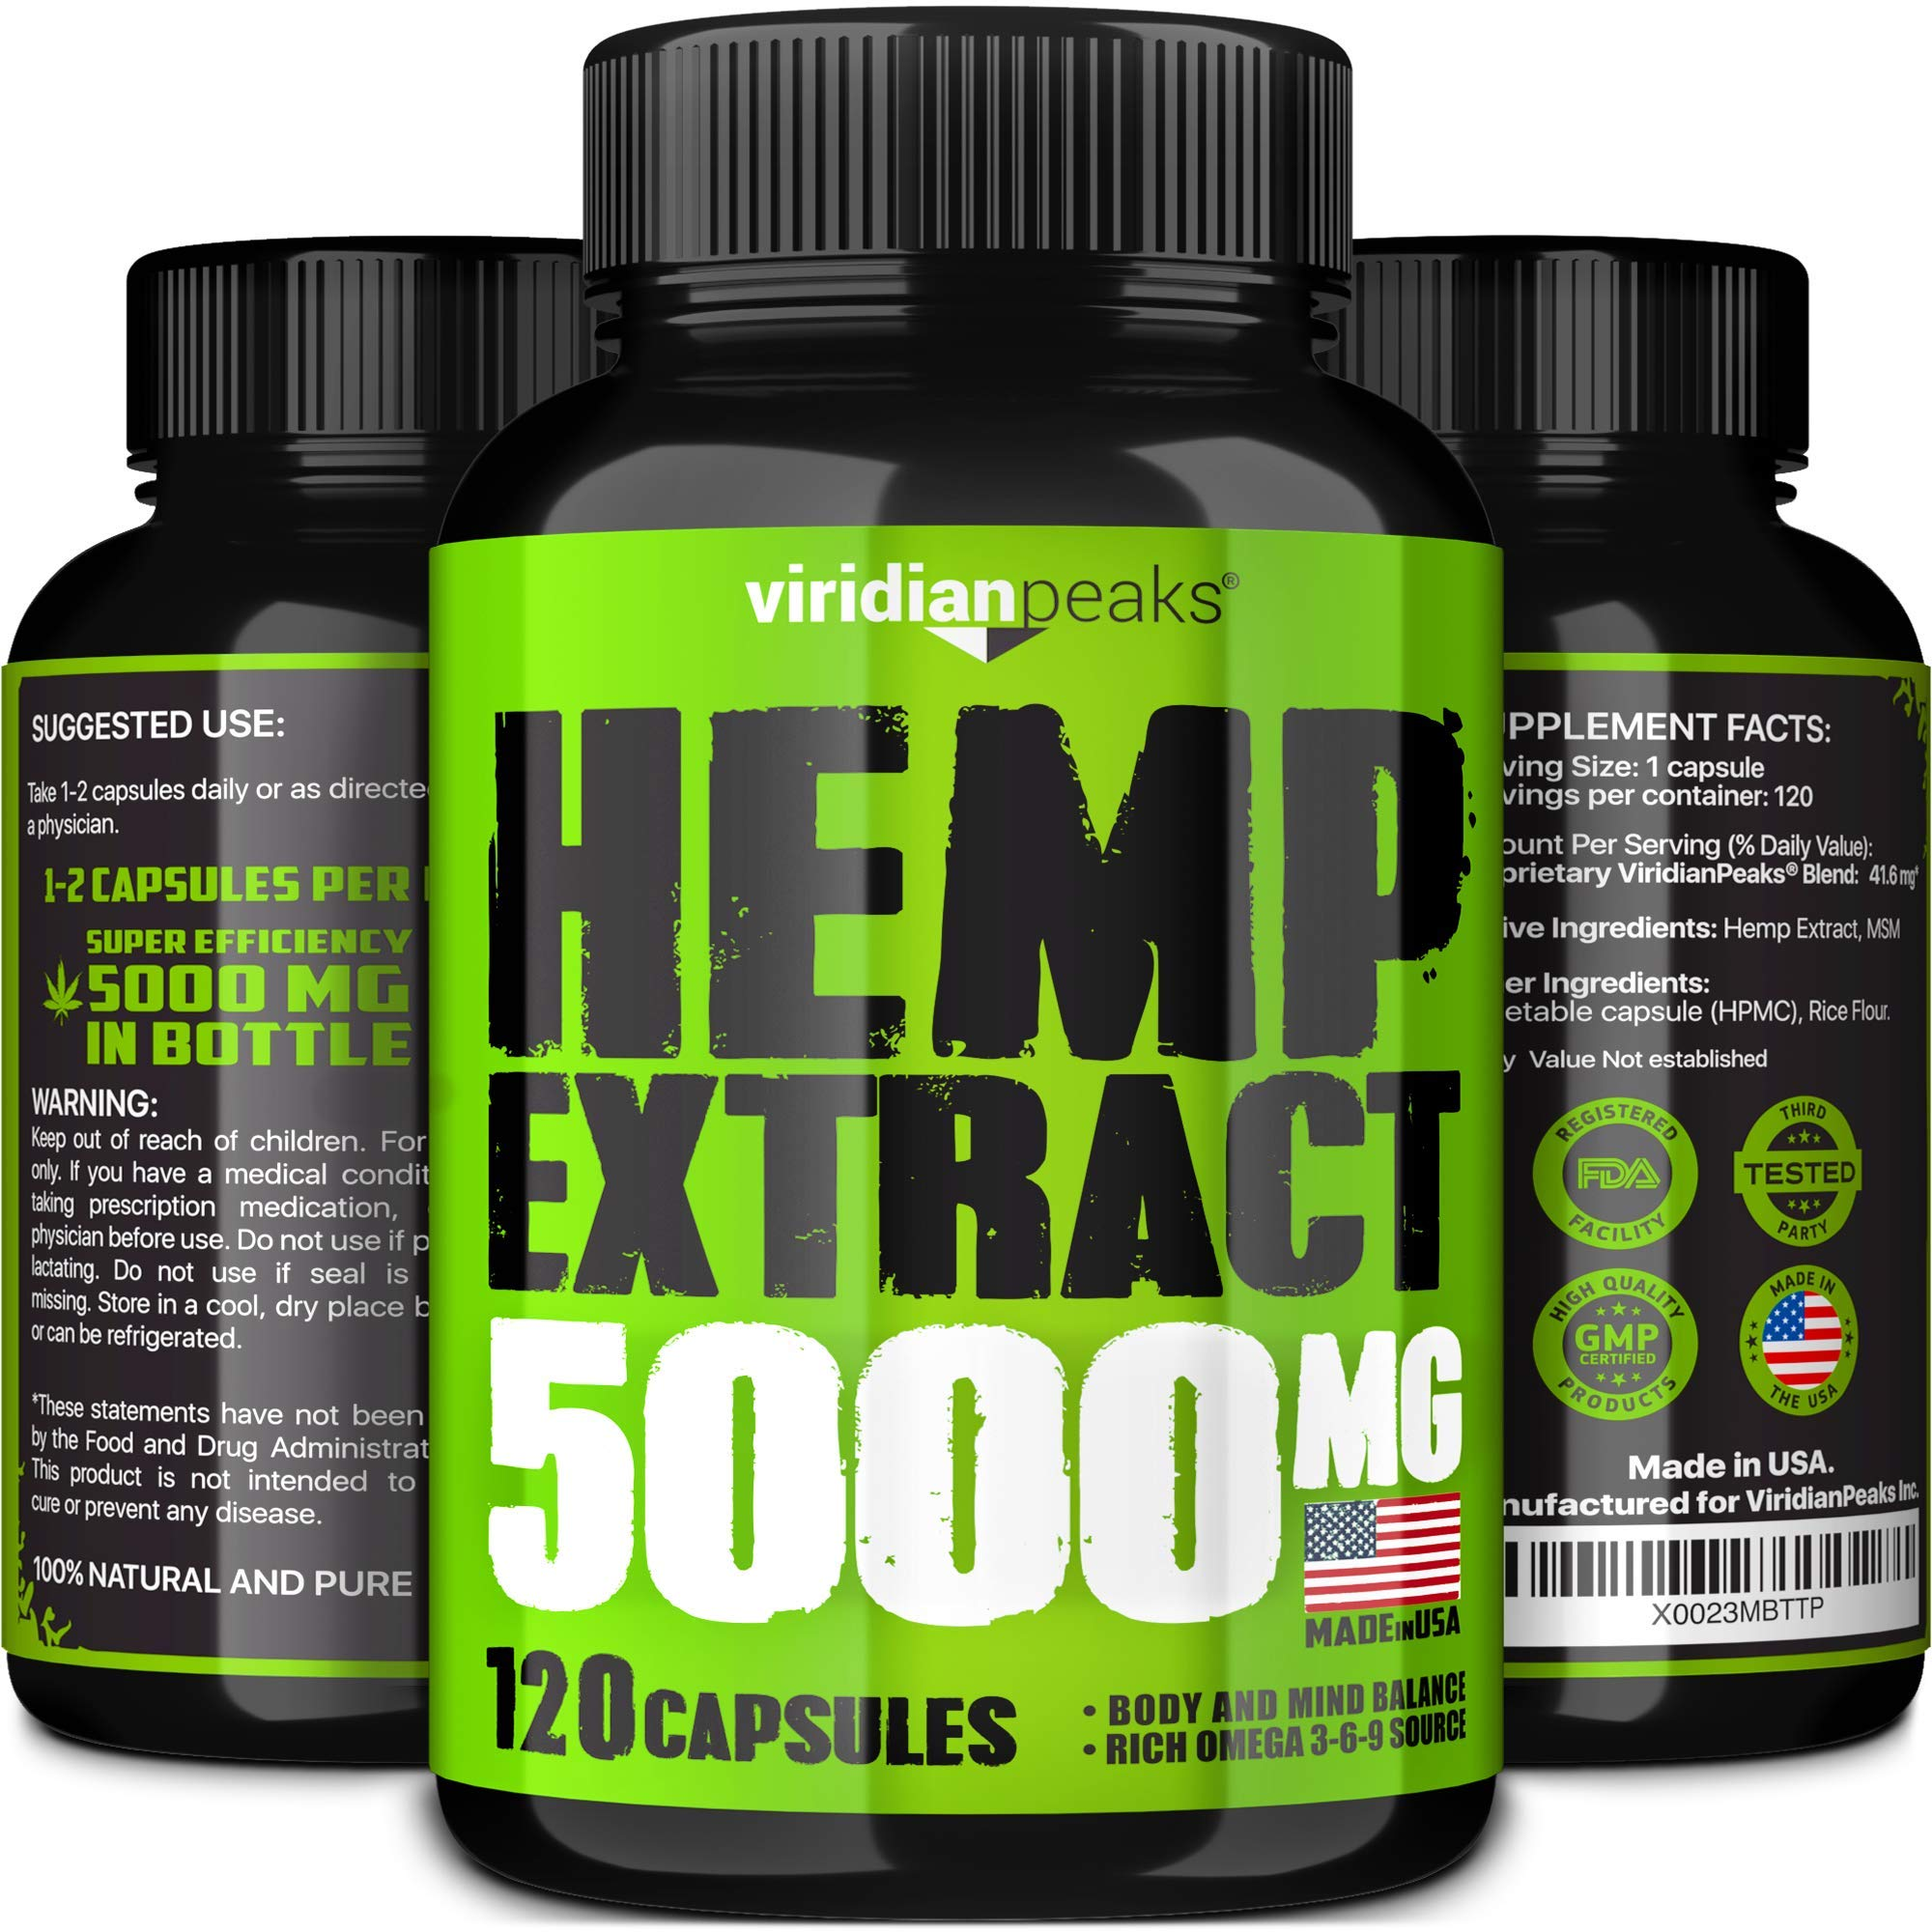 Hemp Extract Capsules - 5000MG - Supplement for Anxiety & Stress Relief - 100% Grown & Made in USA - Premium Quality Immune Support - Omega 3-6-9 Source - Insomnia Relief & Mood Boost by ViridianPeaks